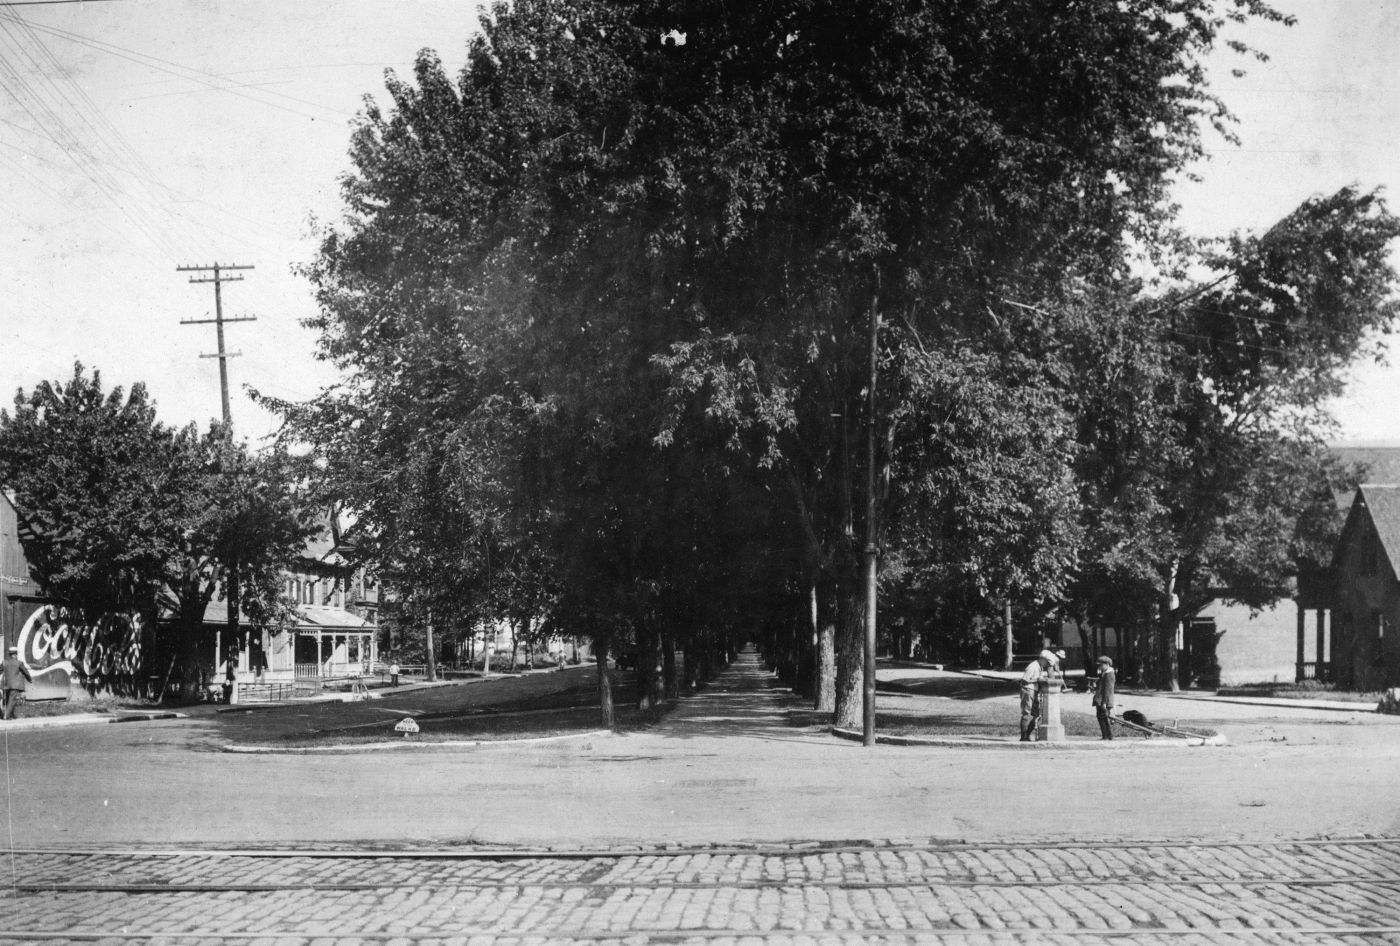 Black and white photograph of a two-lane avenue, with the central span covered with great elms. Houses border the street. Children drink from a fountain.